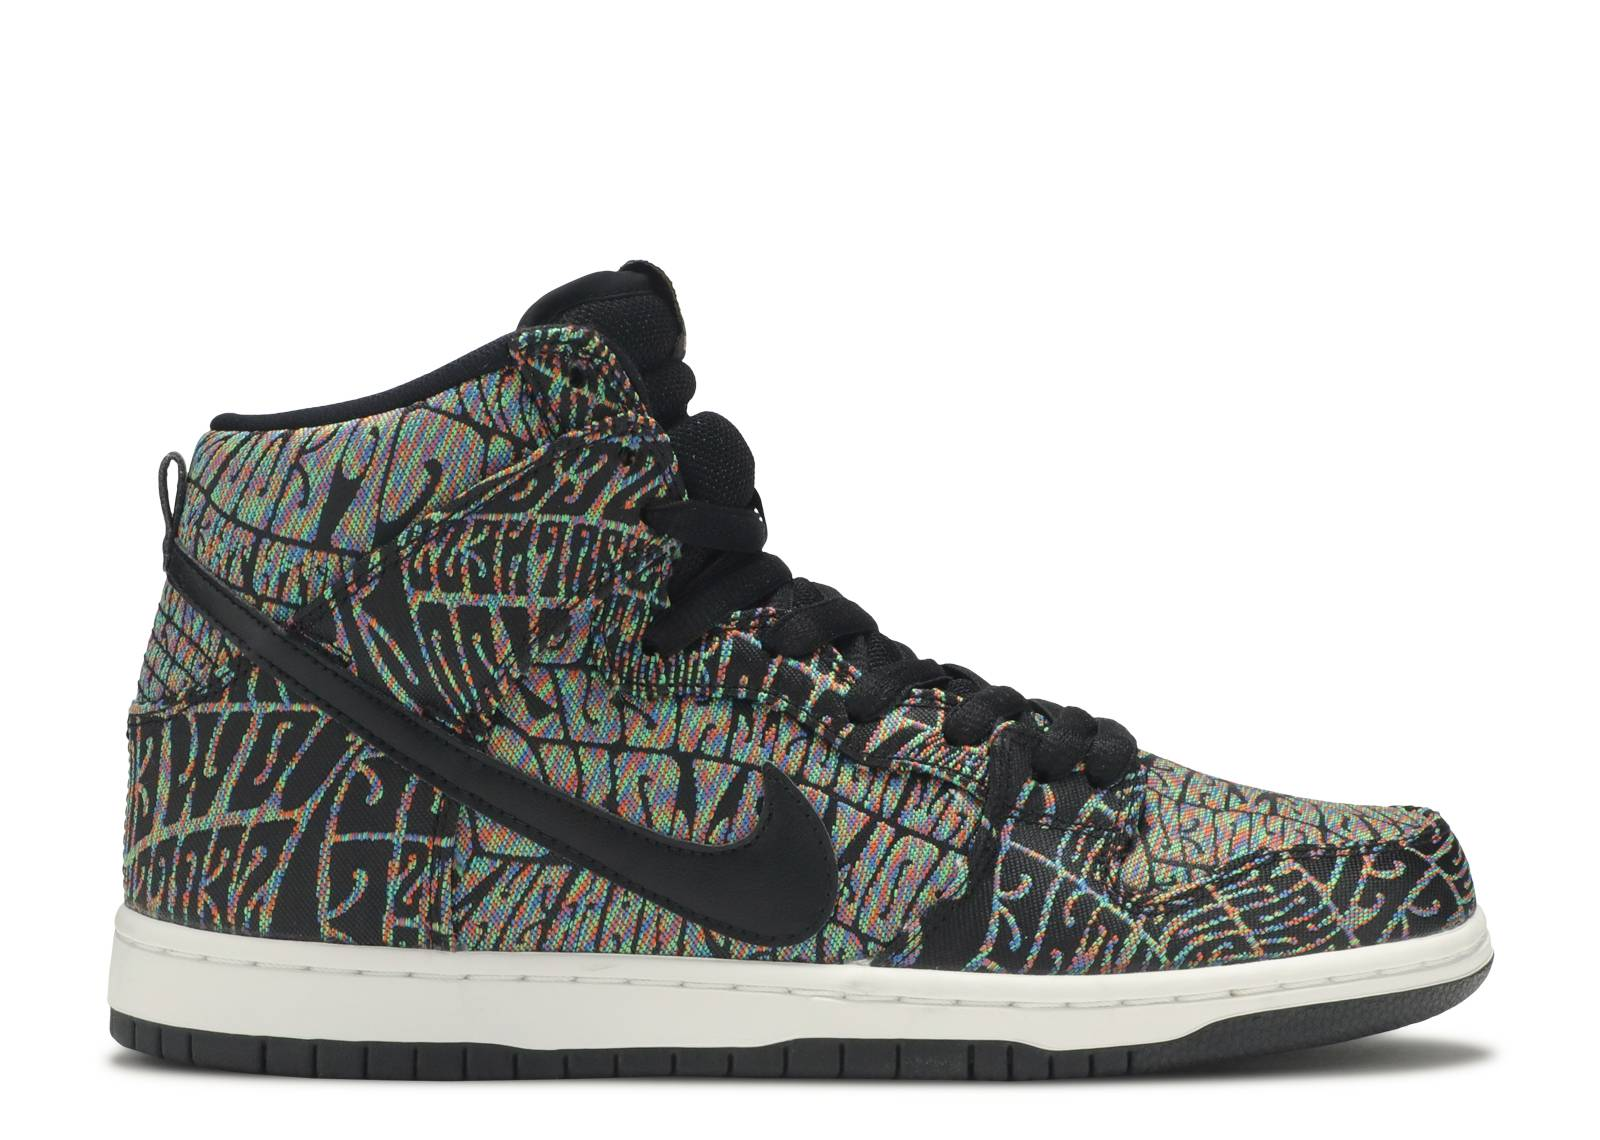 dunk high premium sb psychedelic nike 313171 029. Black Bedroom Furniture Sets. Home Design Ideas